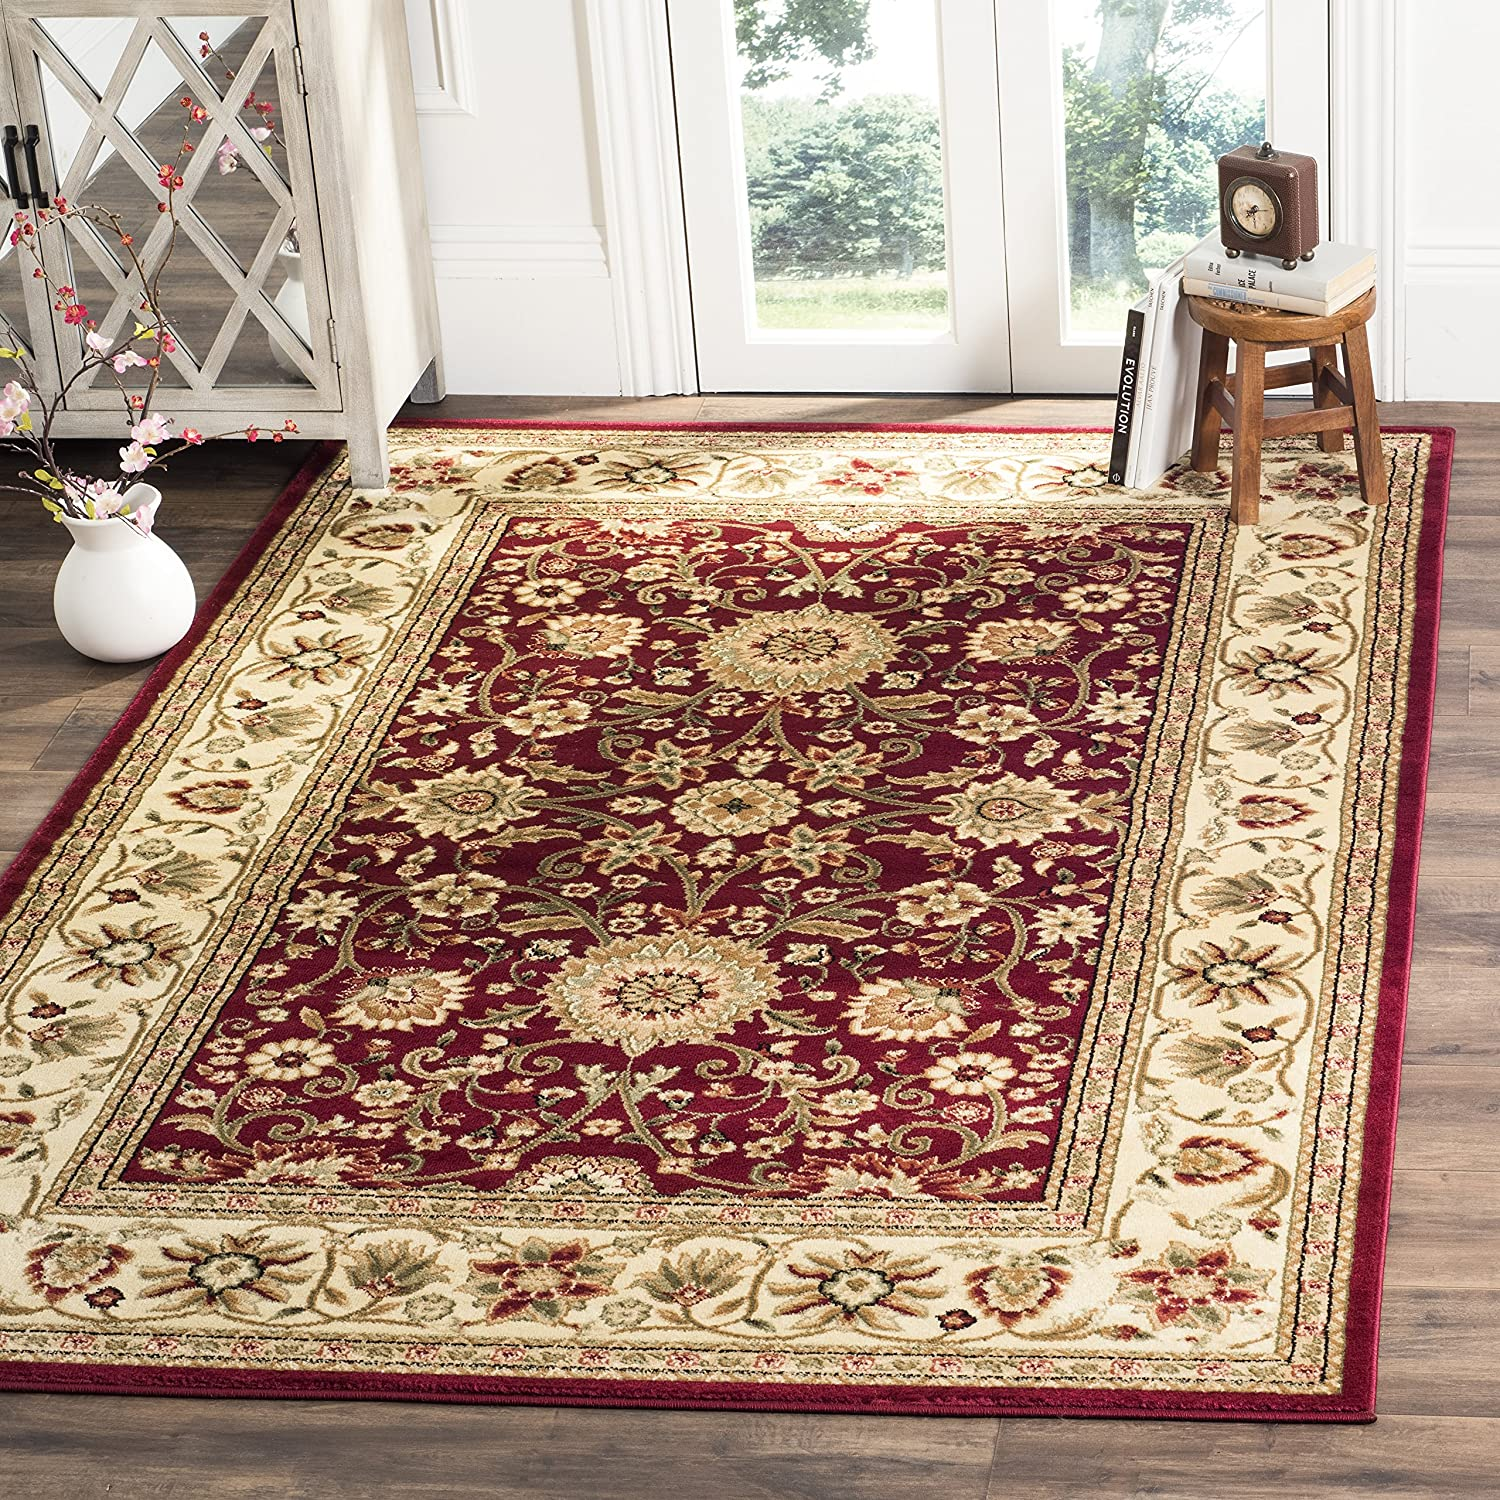 Safavieh Lyndhurst Collection LNH212F Non-S Regular Be super welcome store Oriental Traditional